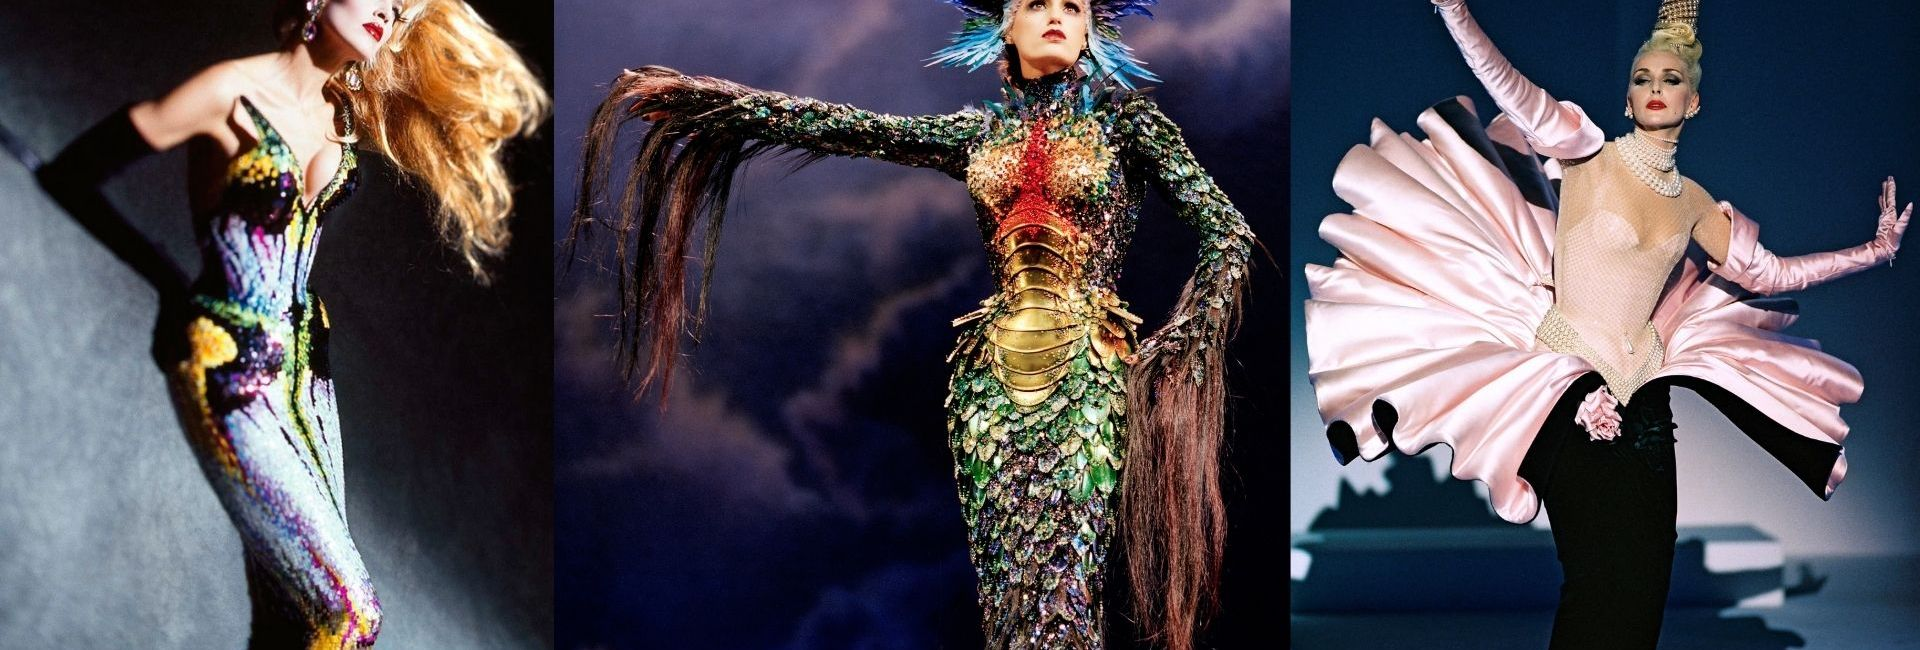 Thierry-Mugler-Couturissime